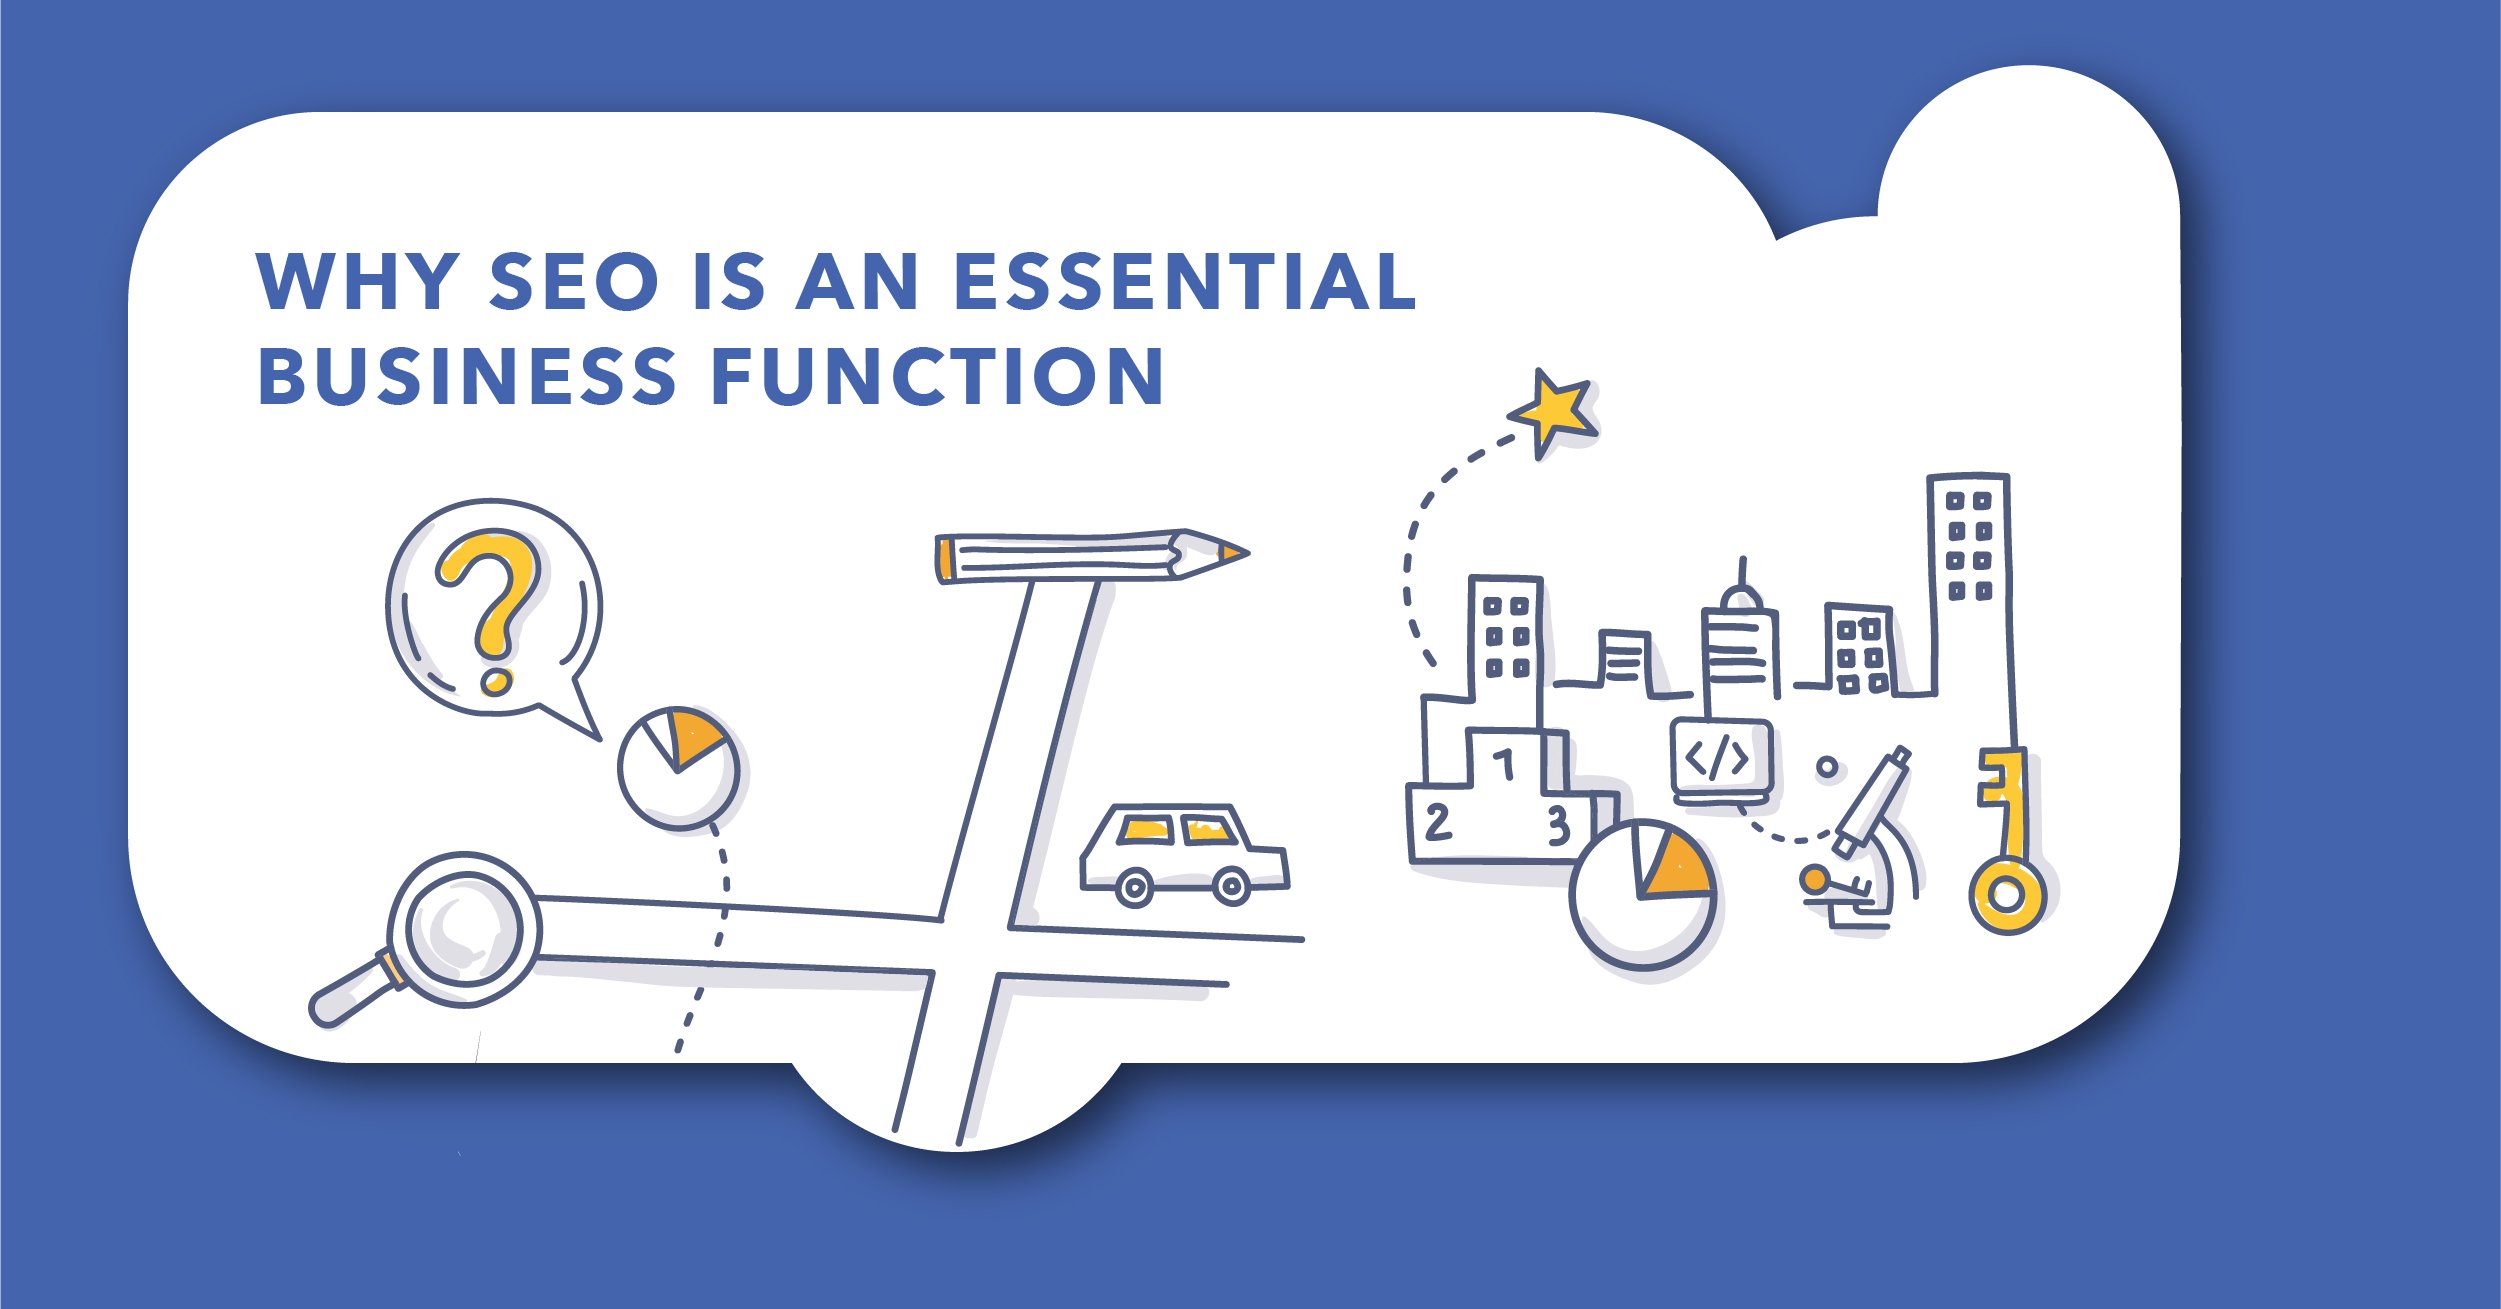 Why SEO is an Essential Business Function, Now and in the Future